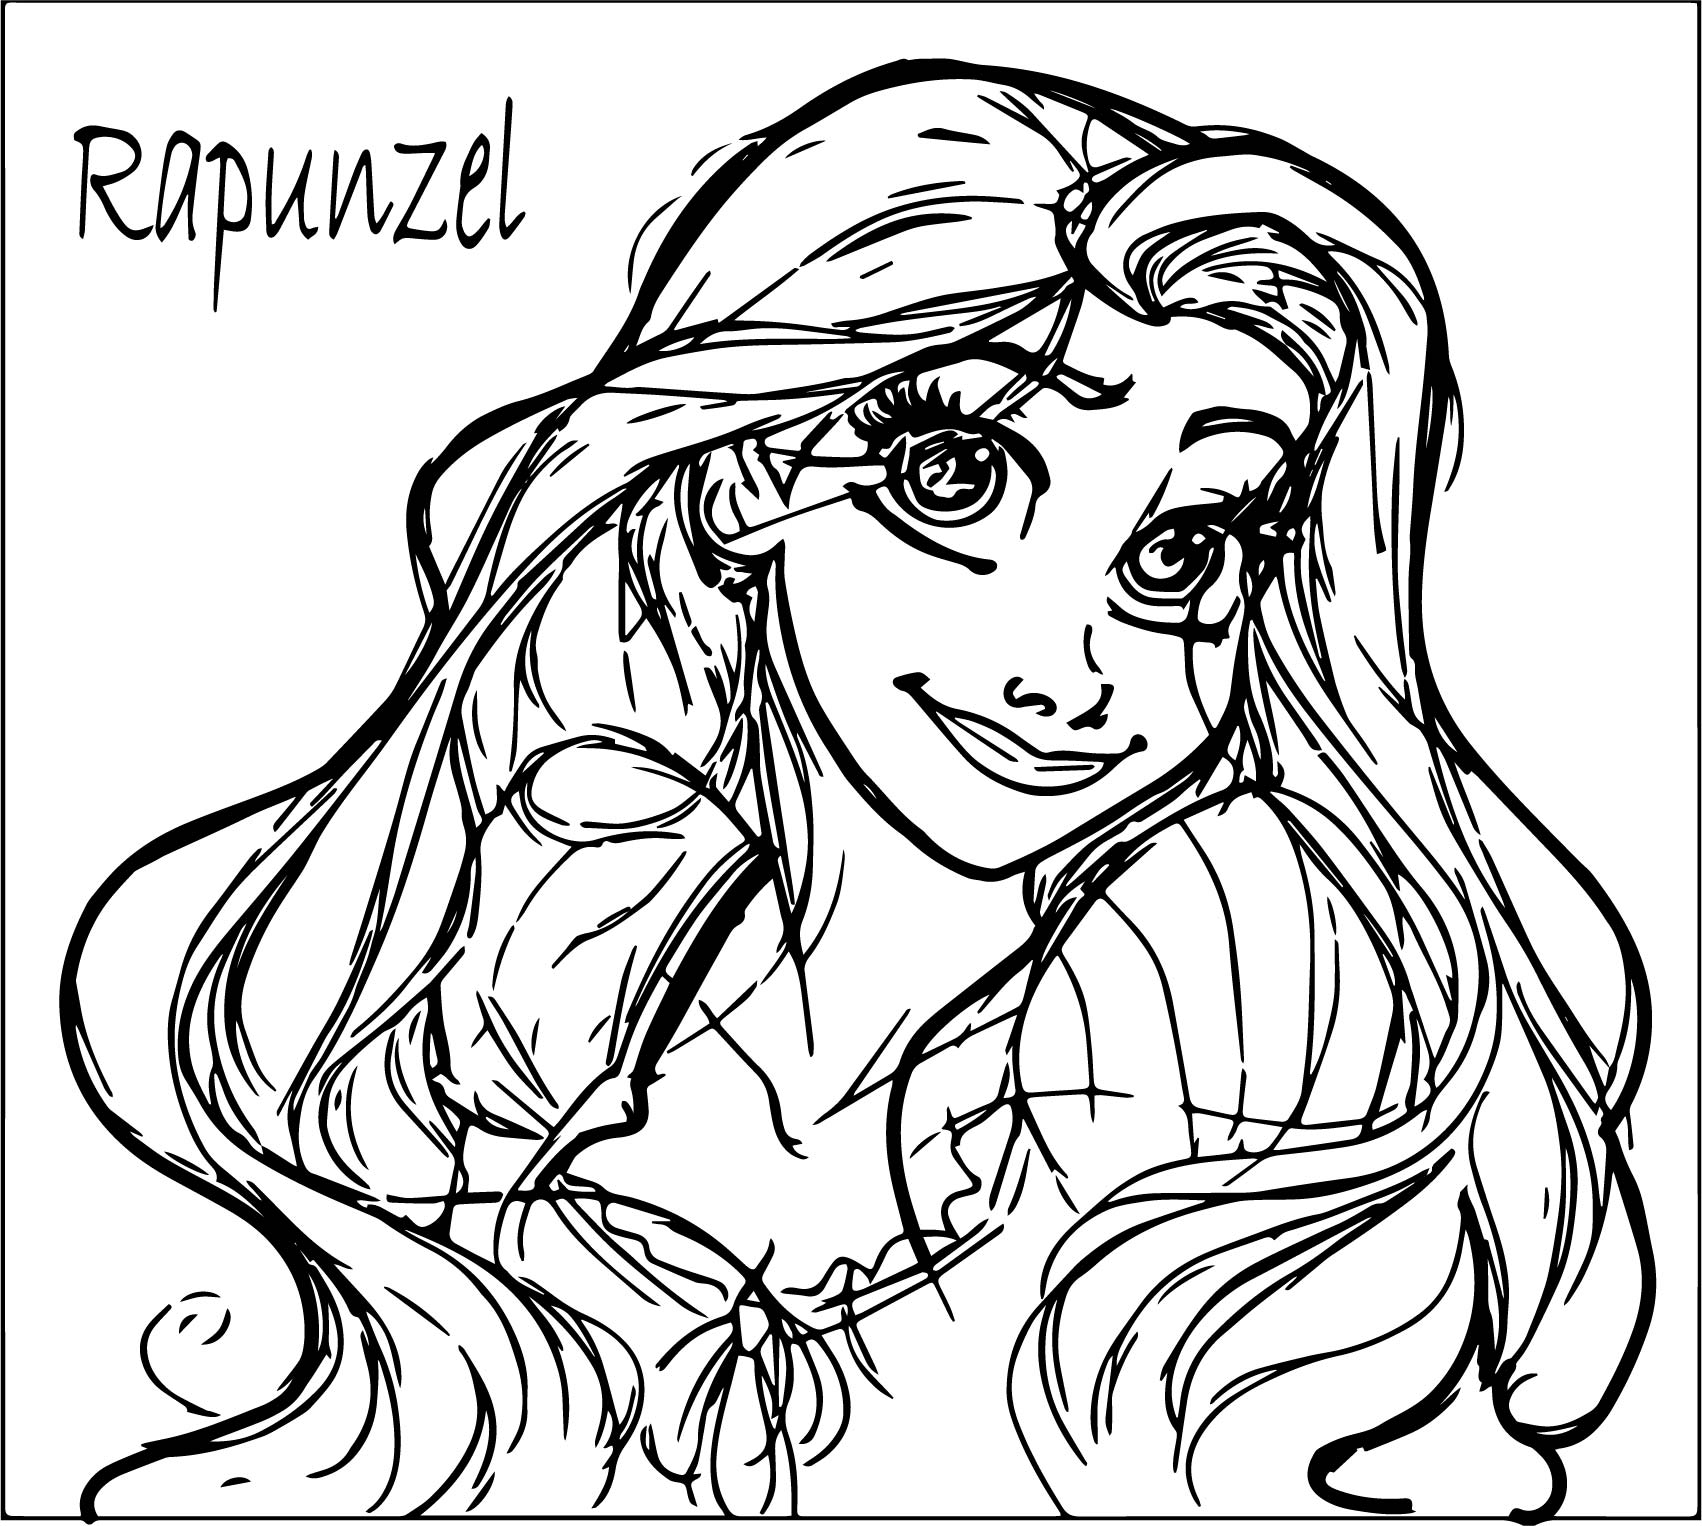 Disney rapunzel from tangled coloring page for Disney princess rapunzel coloring pages